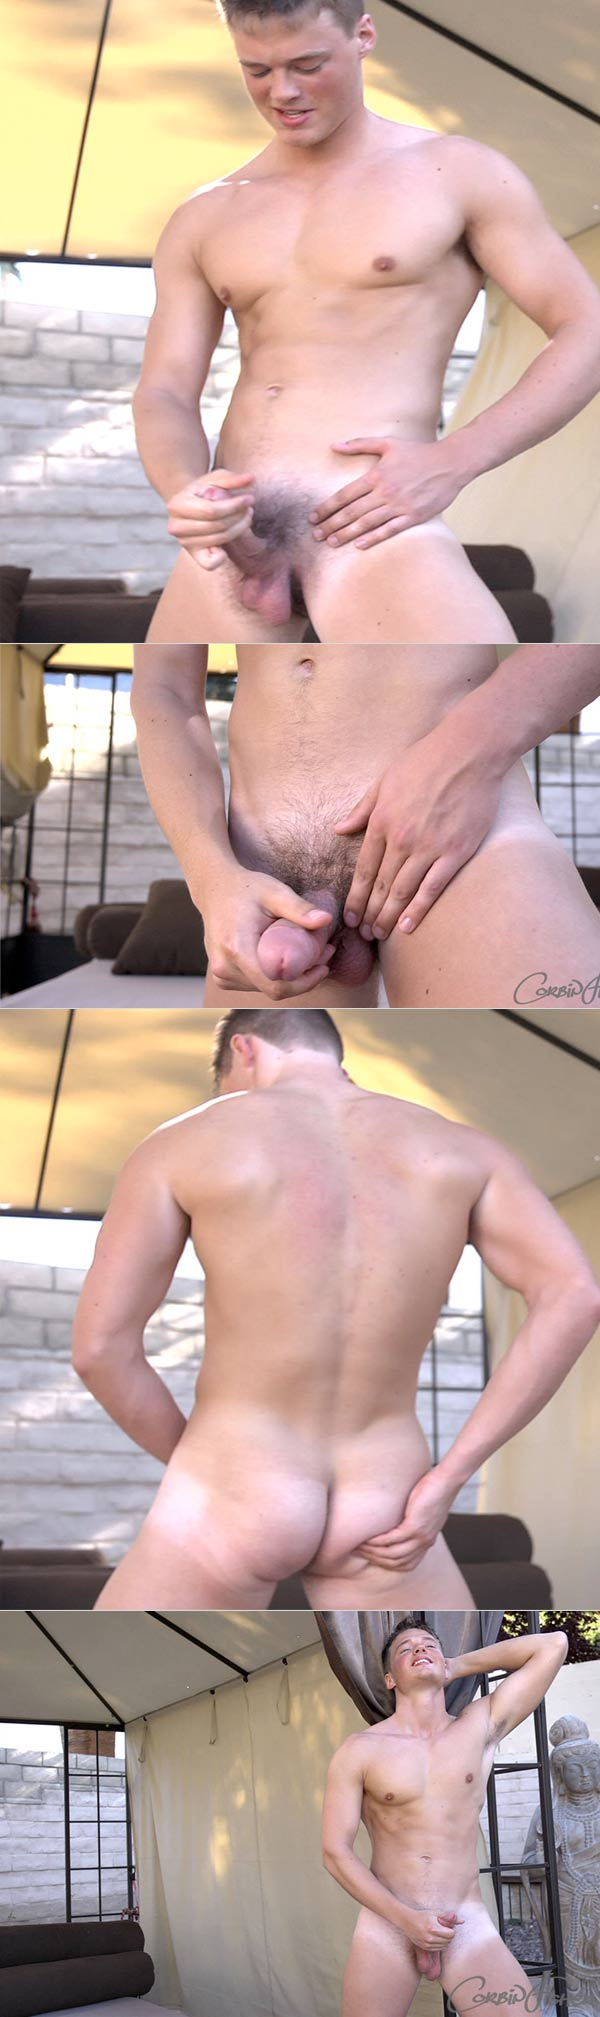 Cort (Jams One Out) at CorbinFisher